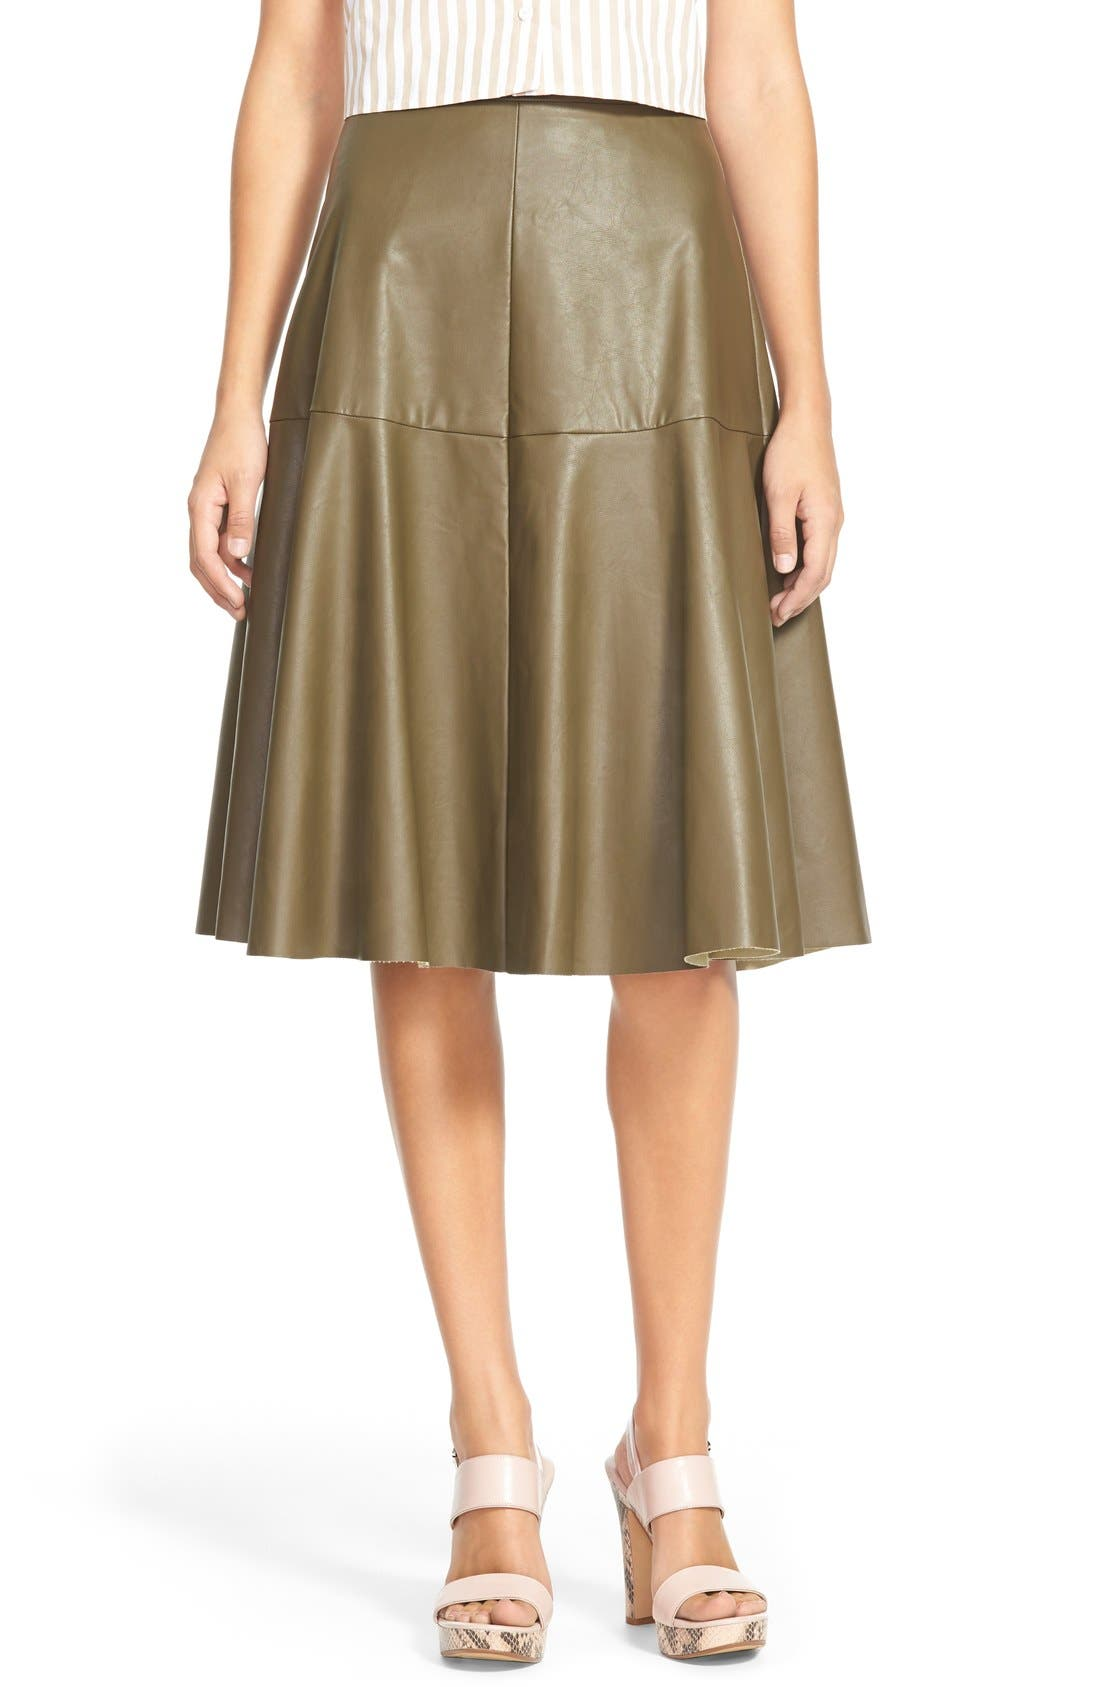 Alternate Image 1 Selected - J.O.A. Faux Leather Midi Skirt